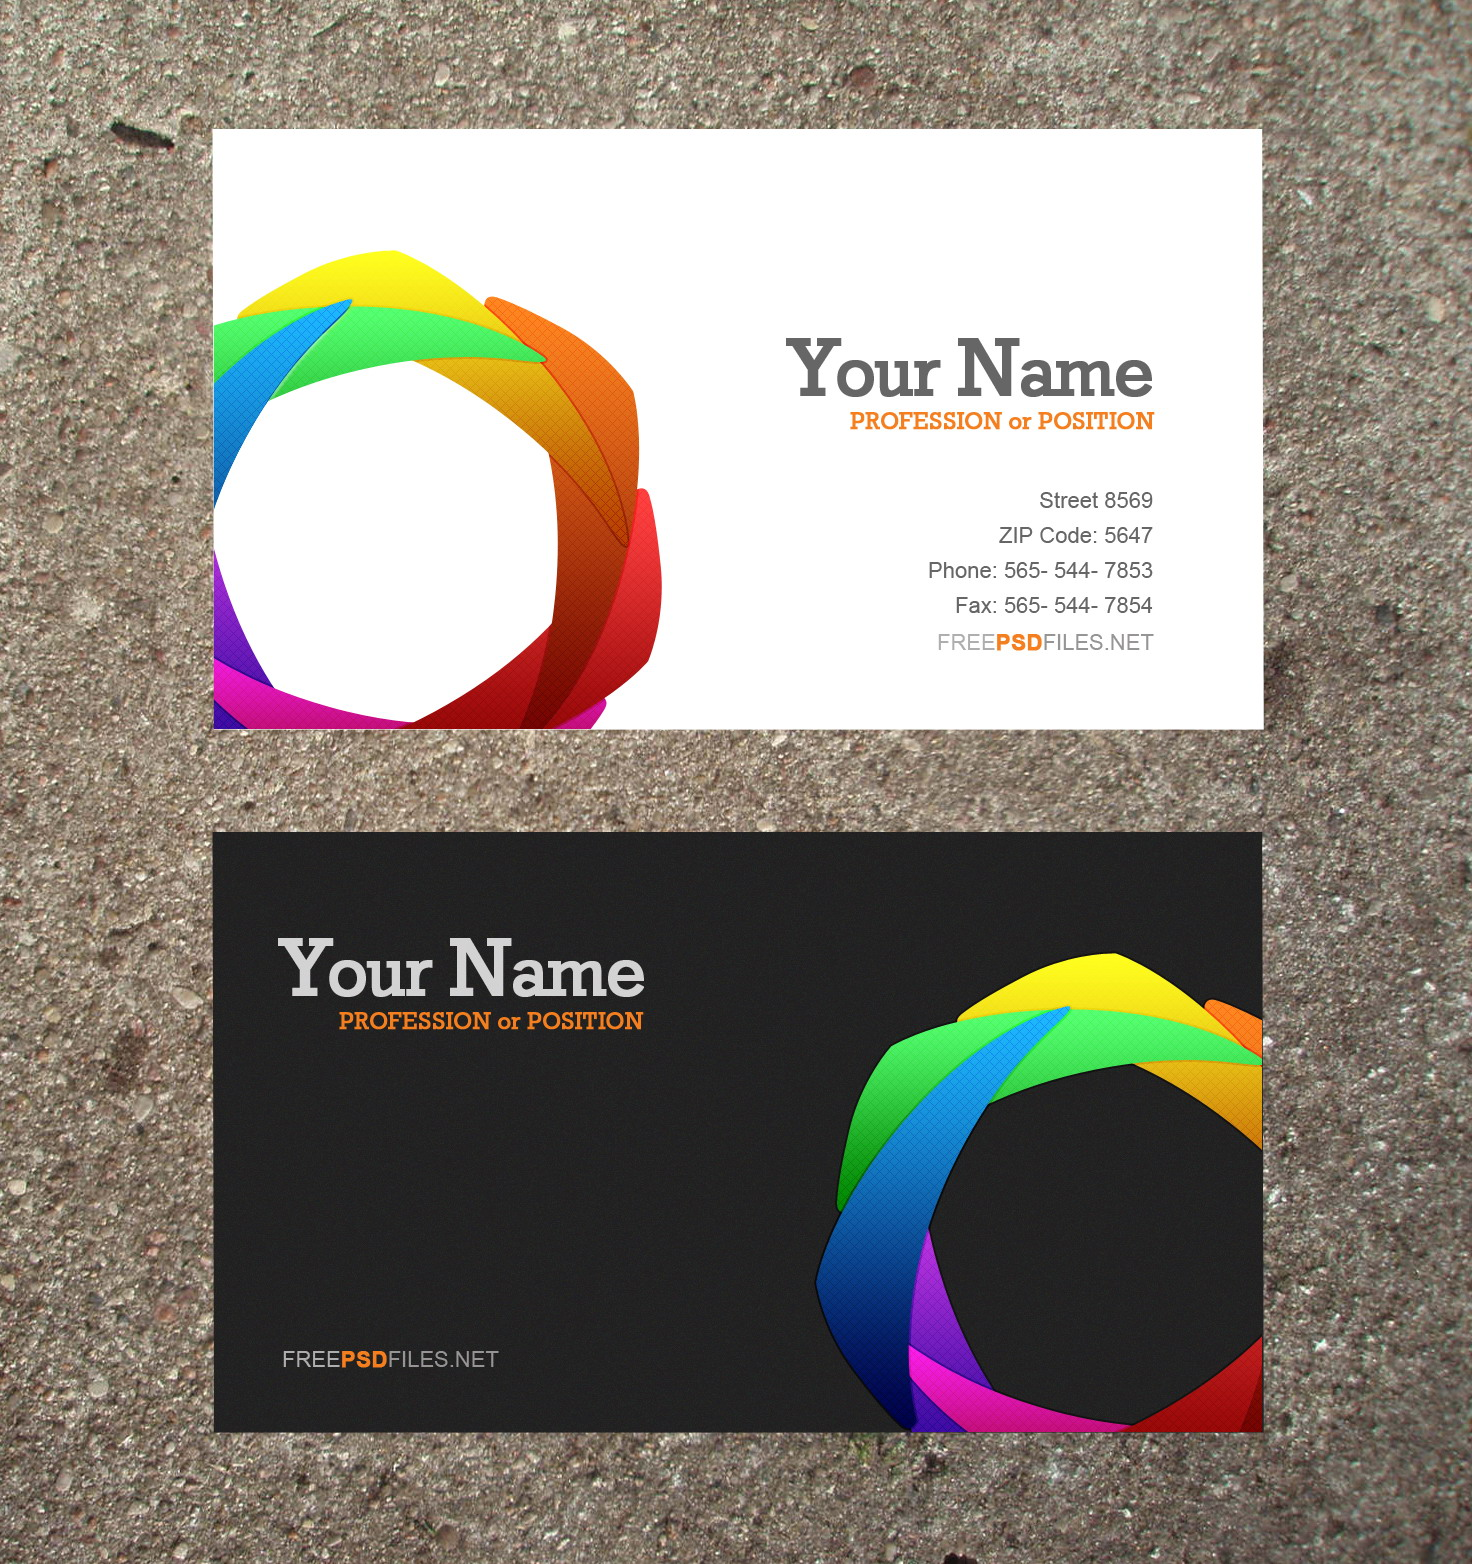 Charming who makes the best business cards images business card cute best color for business cards gallery business card ideas reheart Choice Image